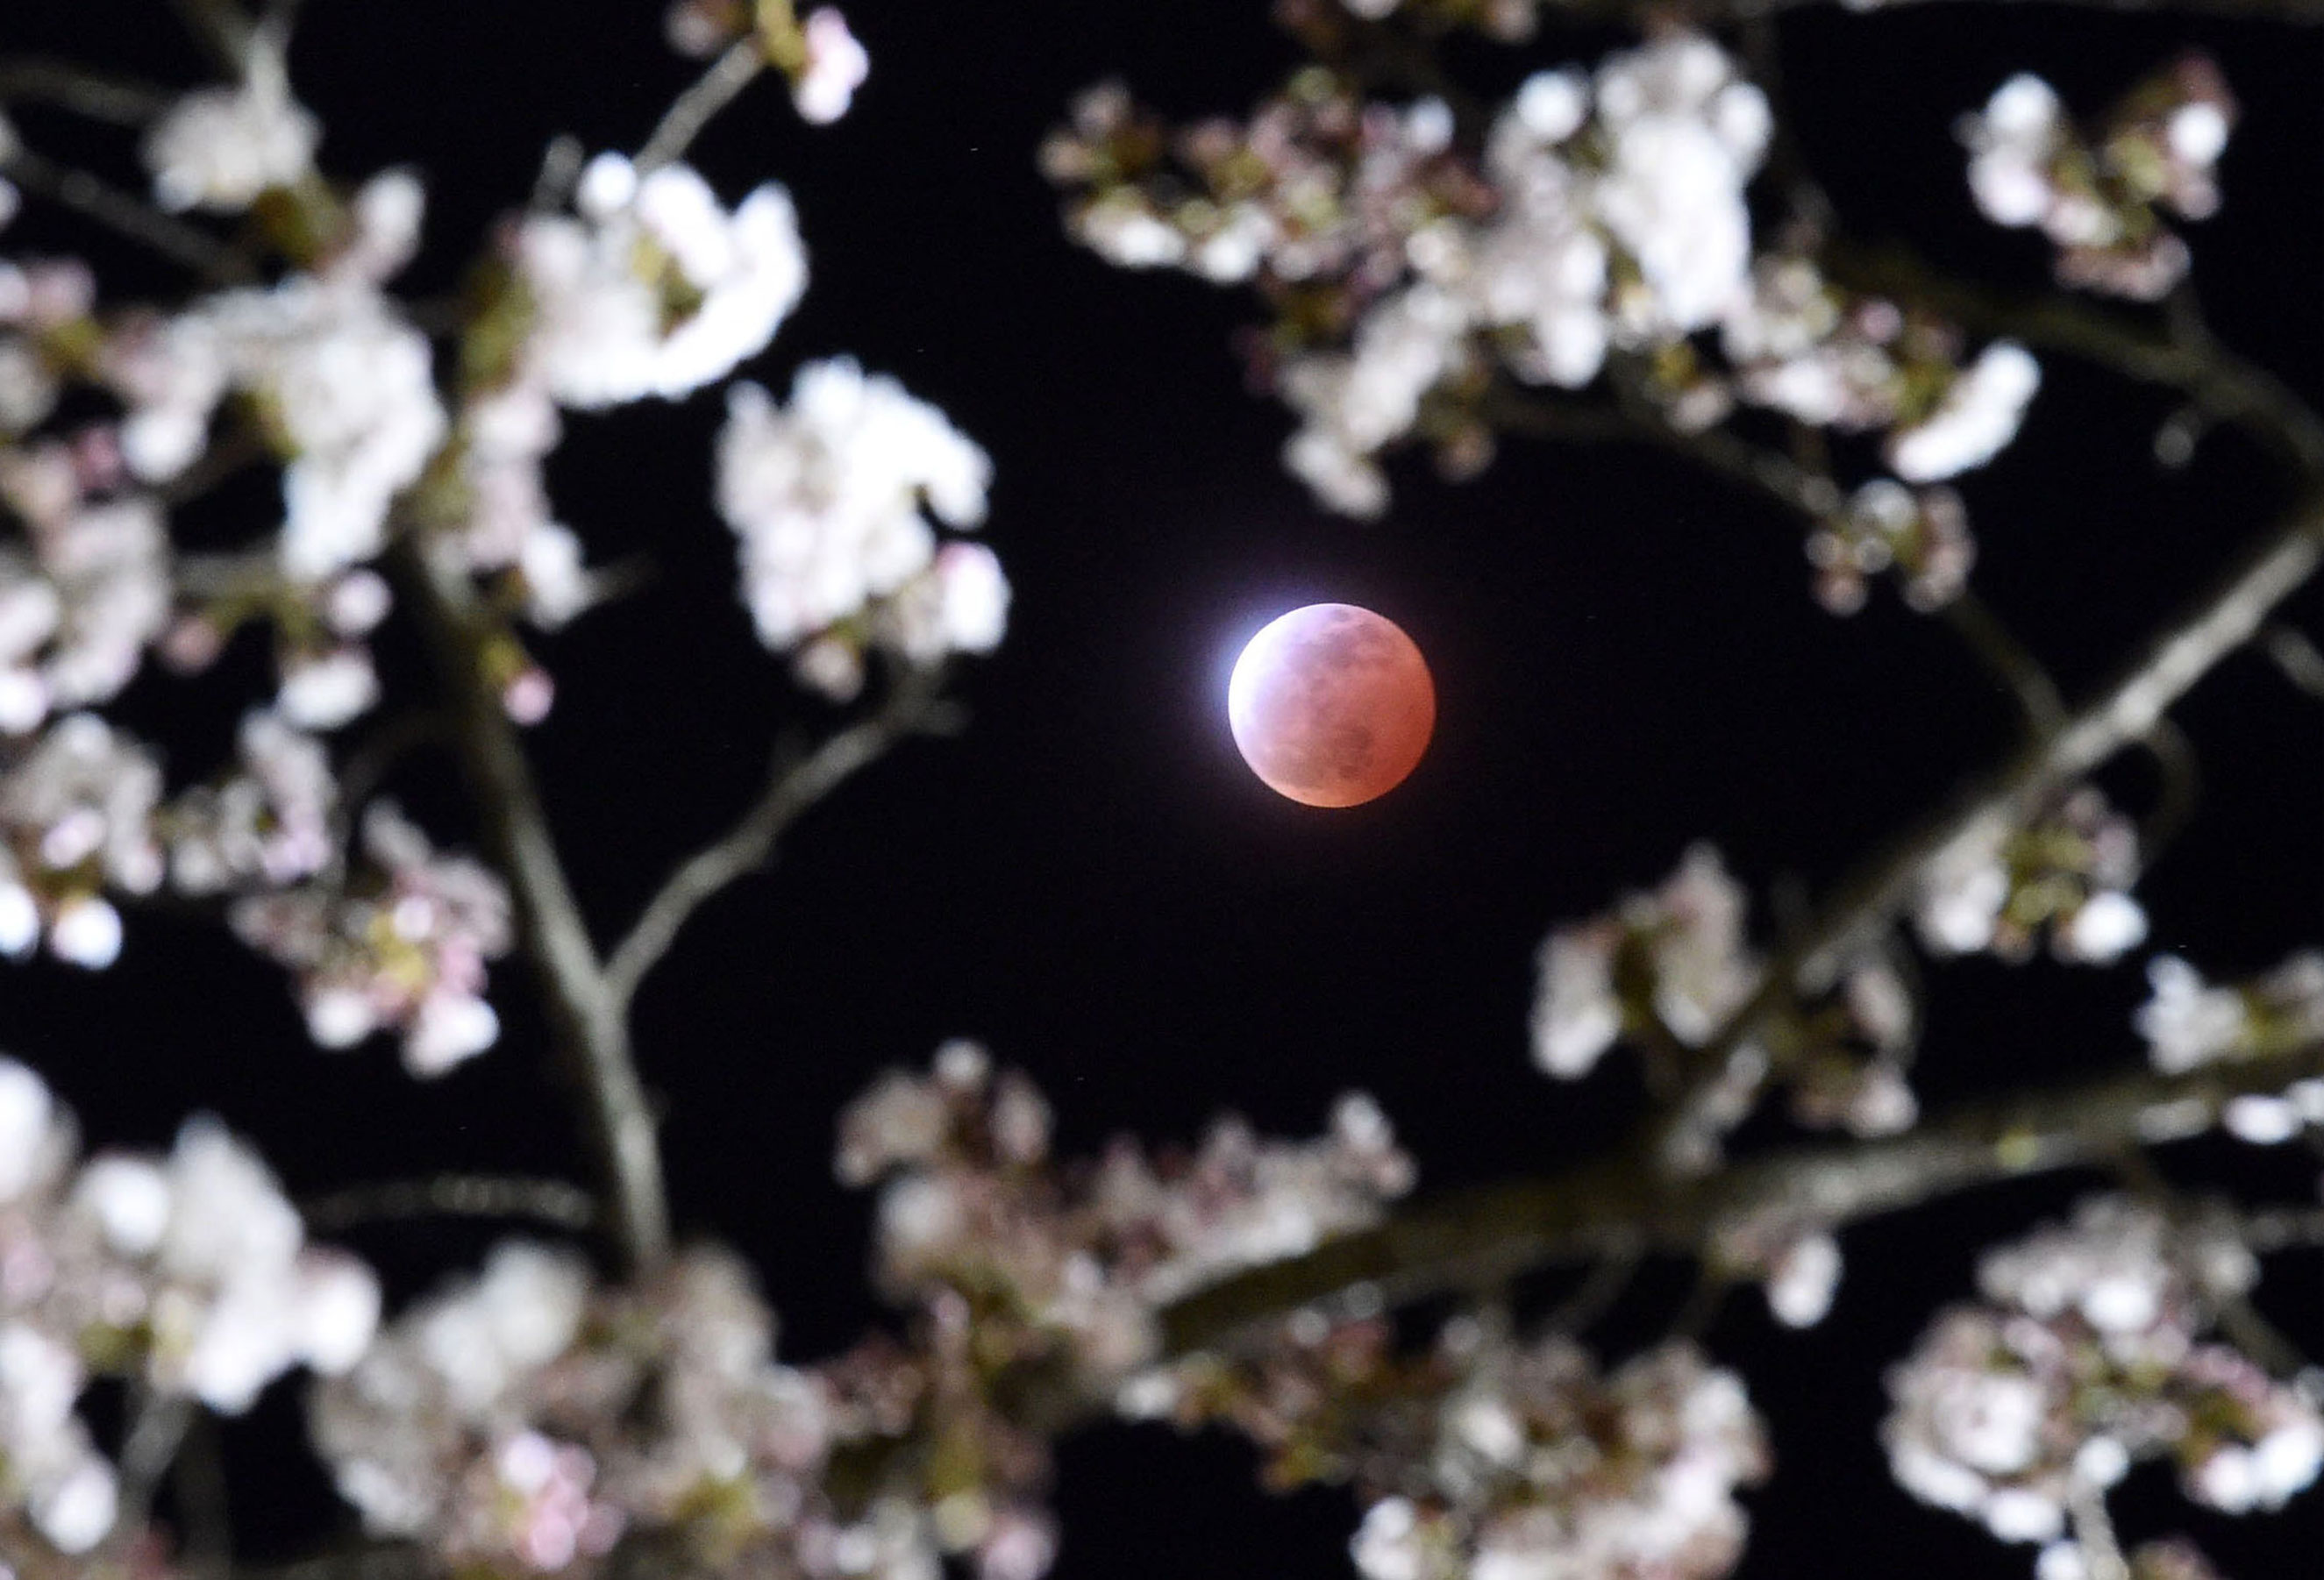 The eclipse above cherry blossoms in Shiraishi city, Miyagi prefecture, Japan on April 4, 2015.